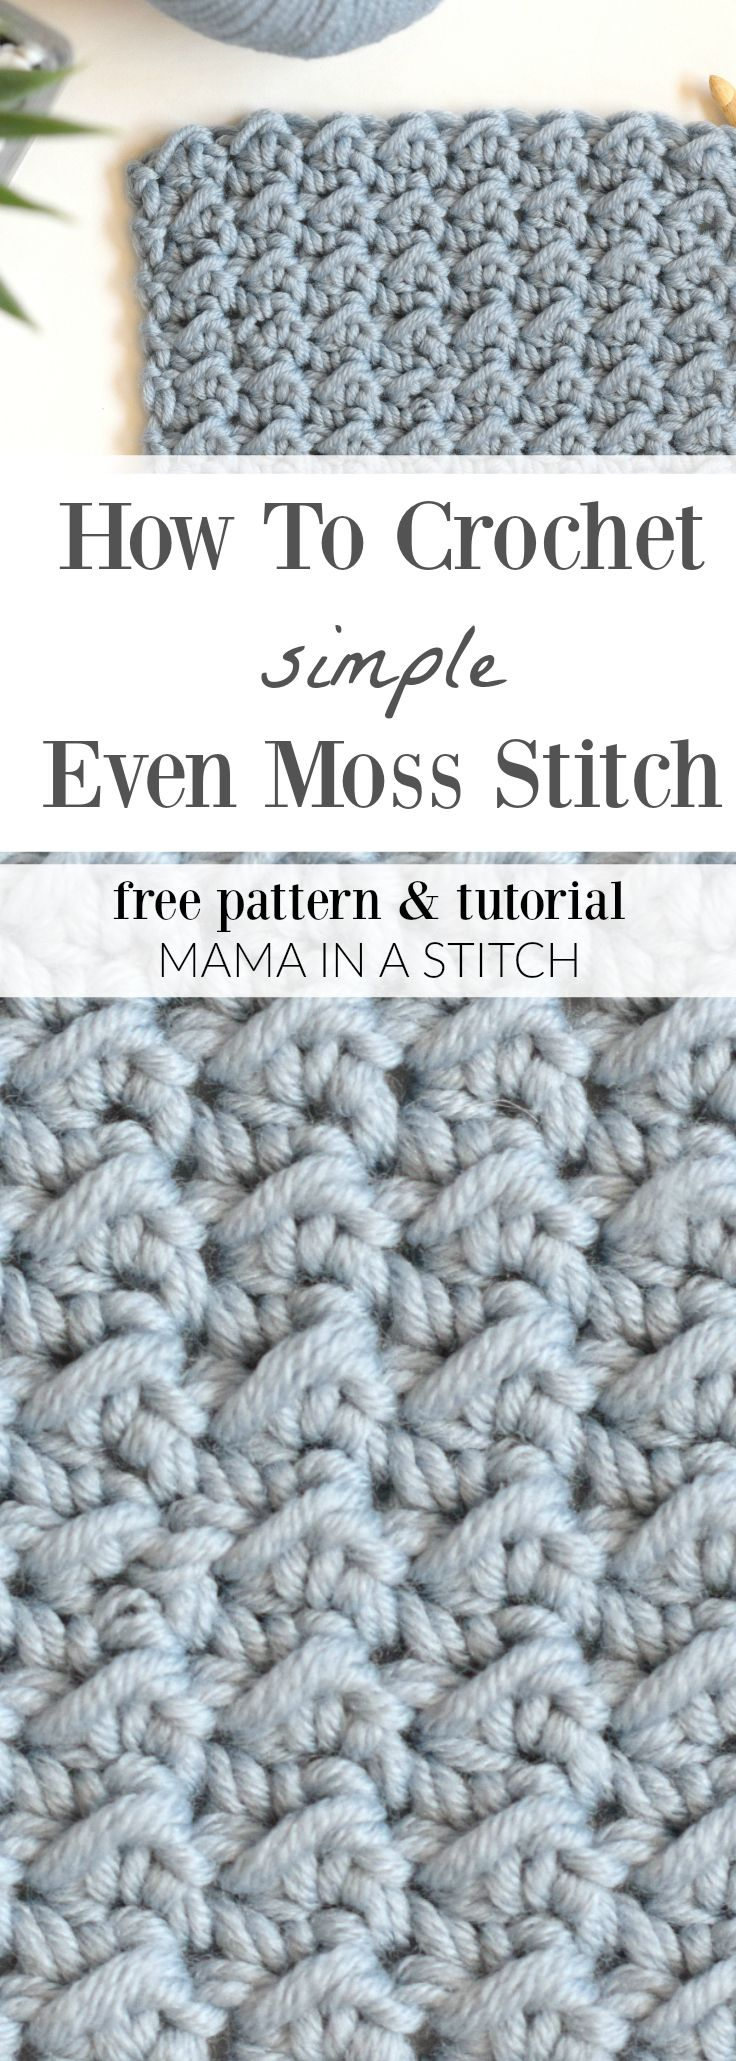 How To Crochet the Even Moss Stitch via @MamaInAStitch A pretty, free stitch tutorial. This shows you how to crochet an easy stitch with a gorgeous texture. Step by step photos and written pattern. #crafts